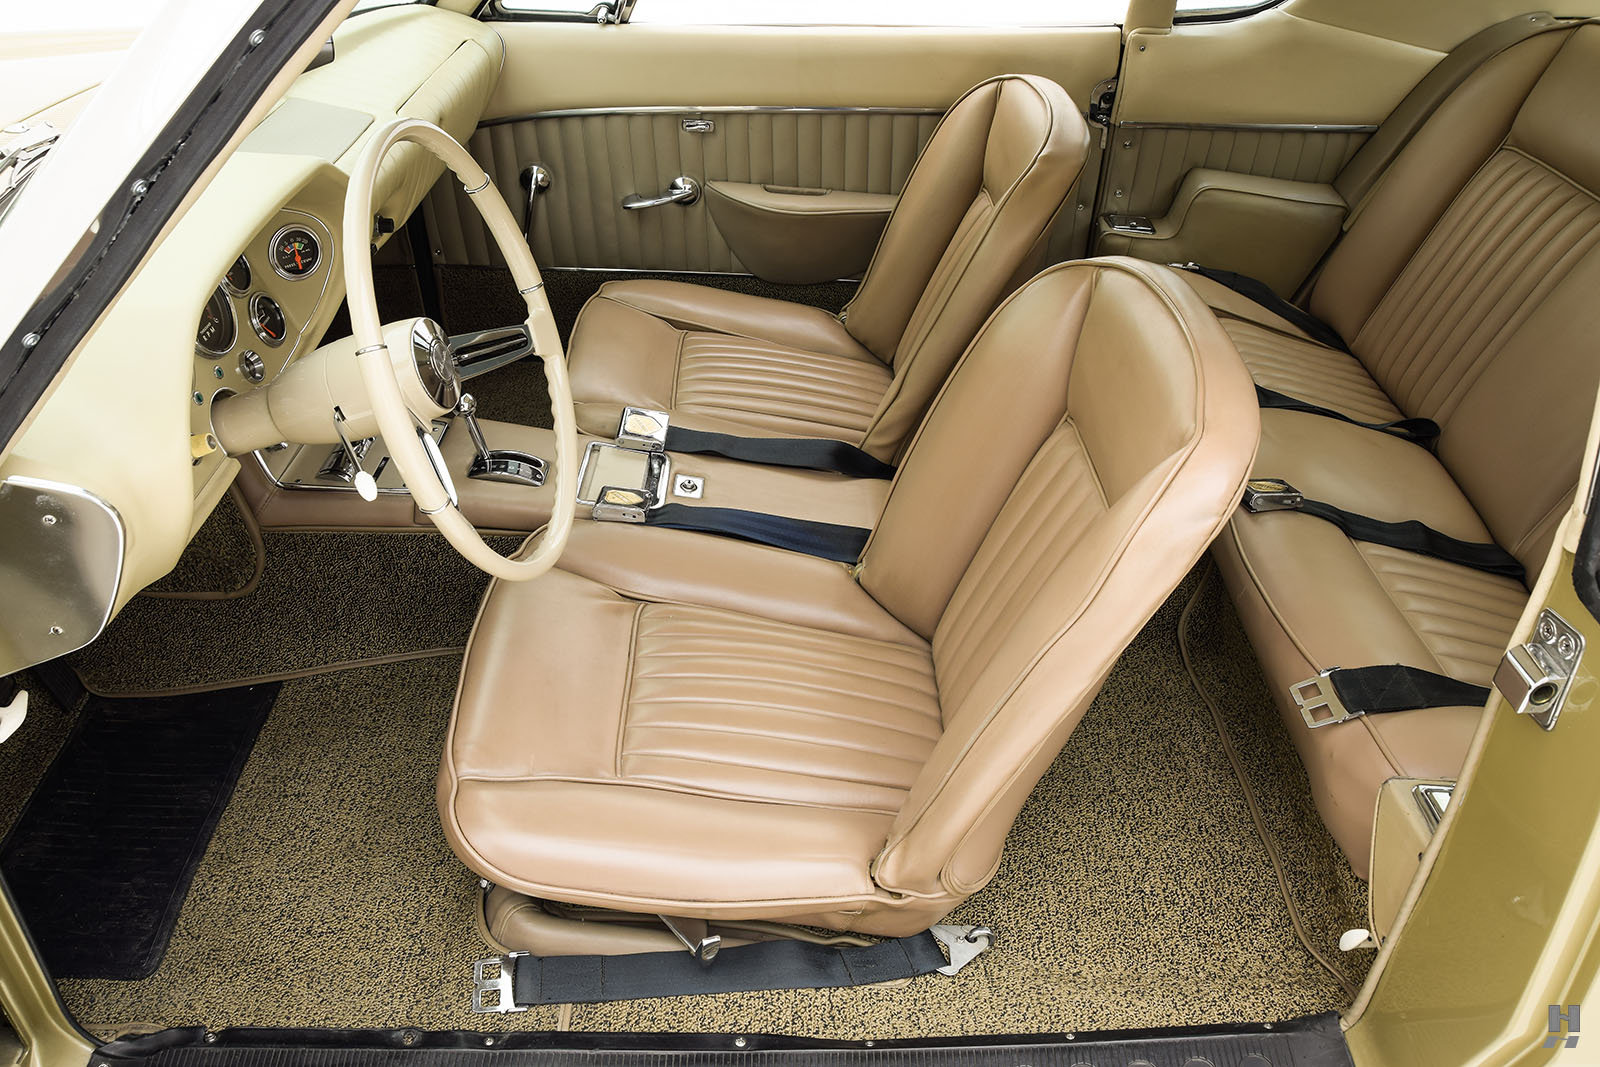 1963 STUDEBAKER AVANTI For Sale (picture 3 of 6)